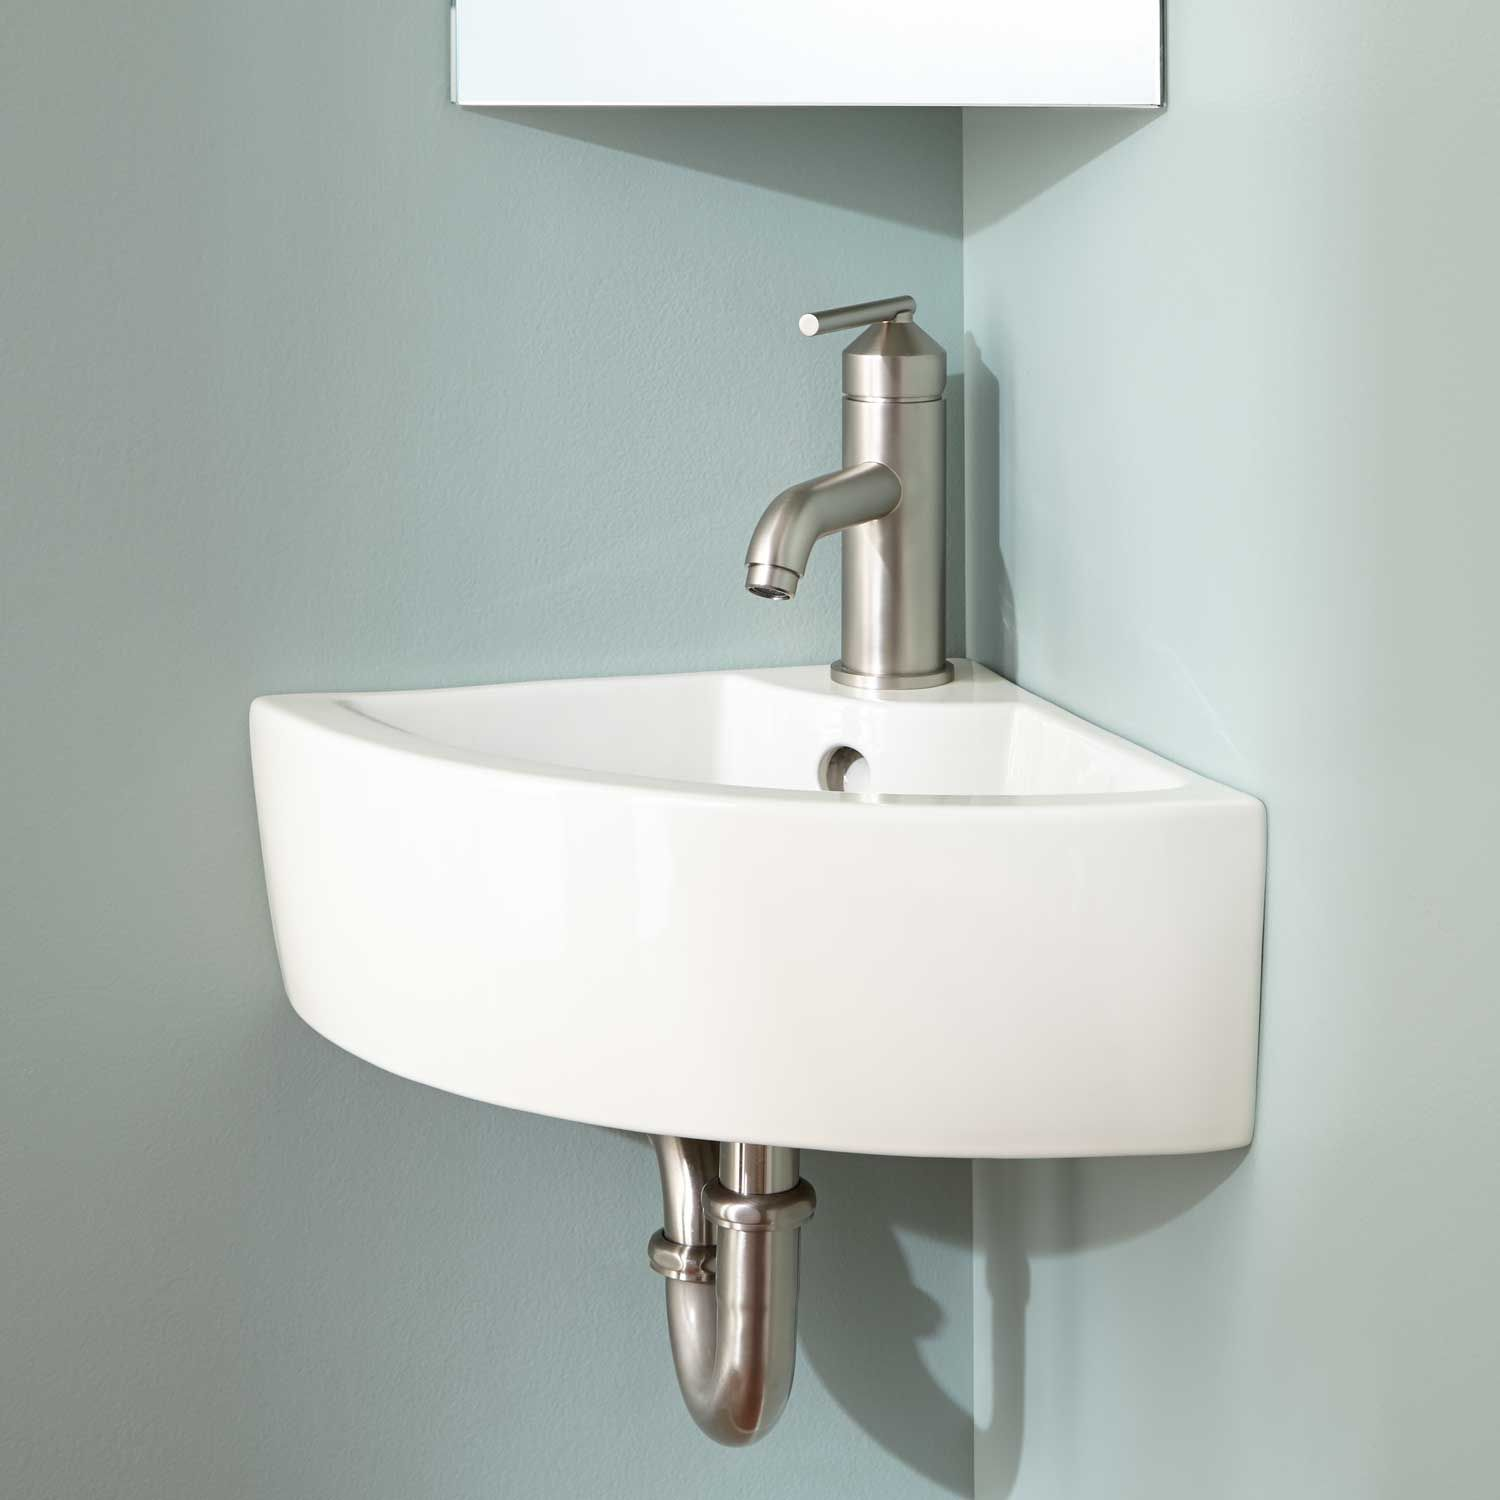 Corner Bathroom Sinks For Small Es